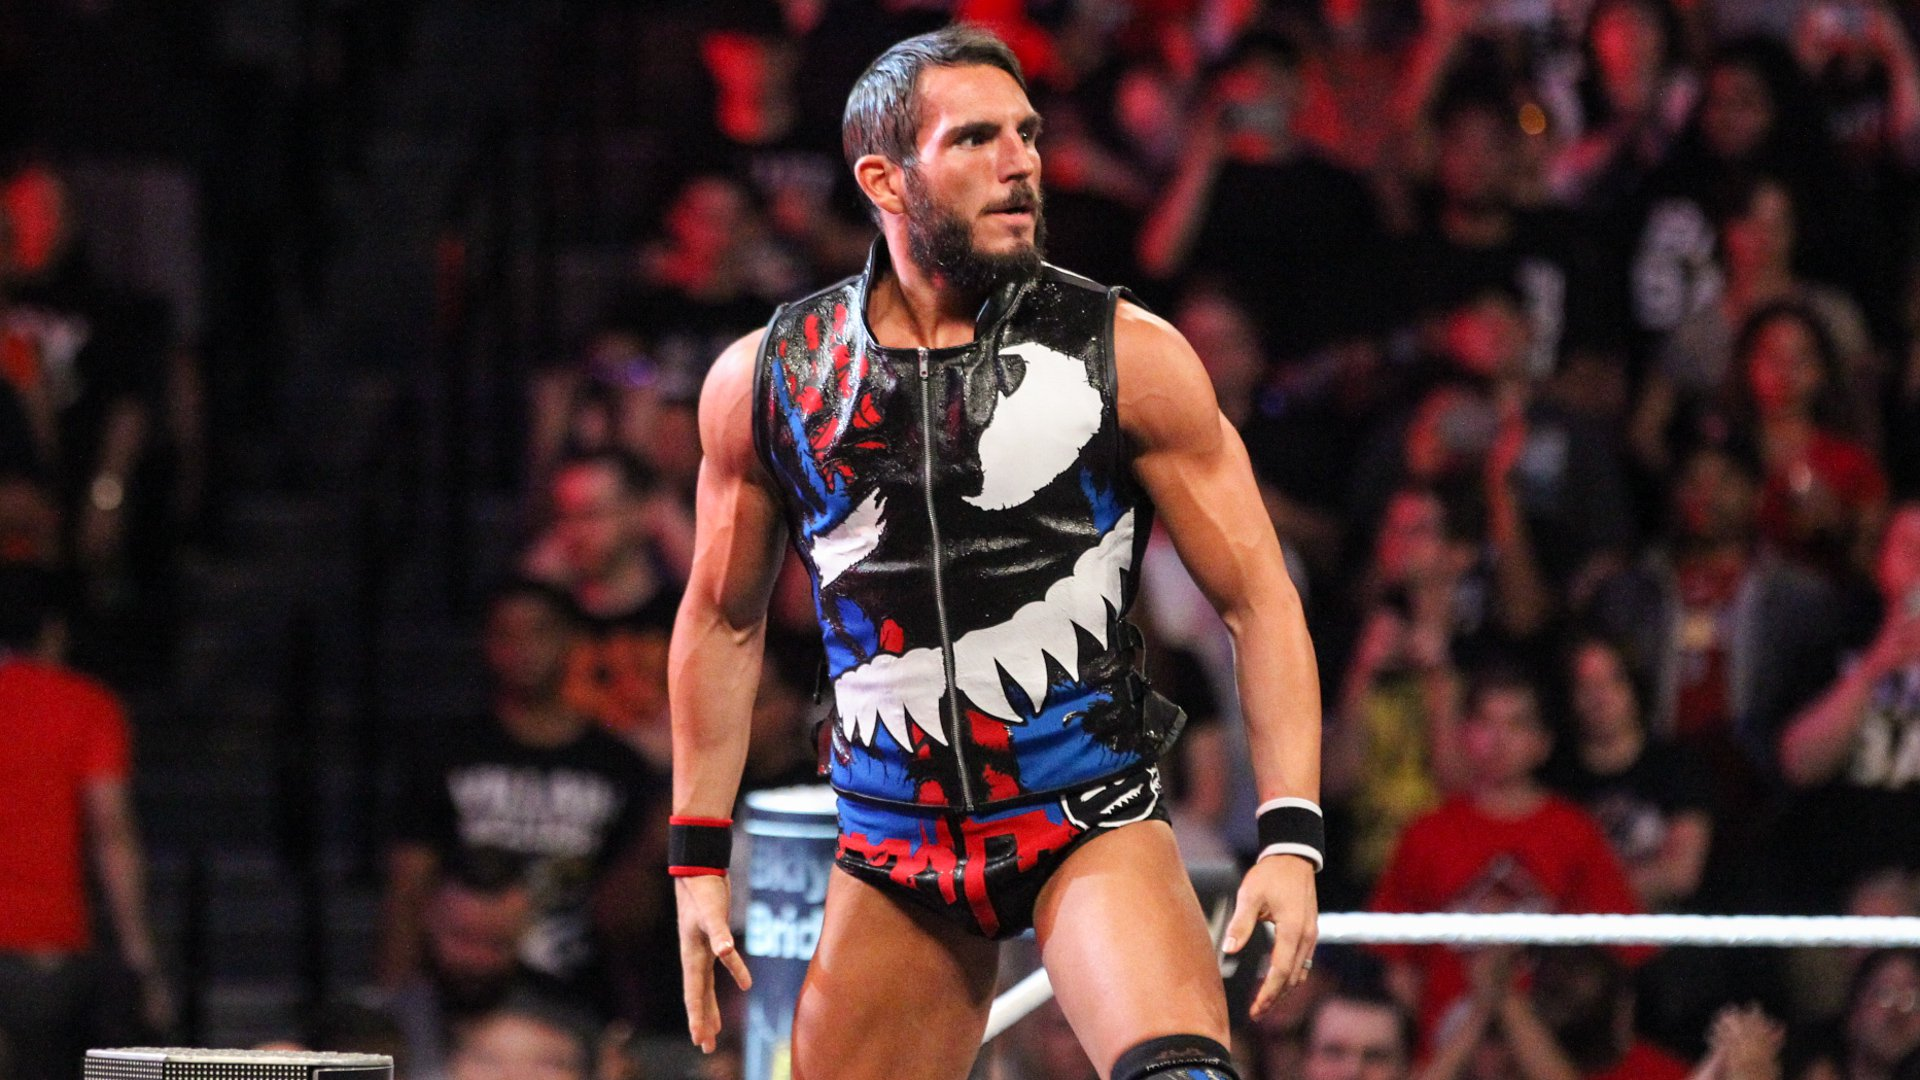 5bdbdb34111a Johnny Gargano talks using new playbook heading into NXT TakeOver: War  Games | Sporting News Canada